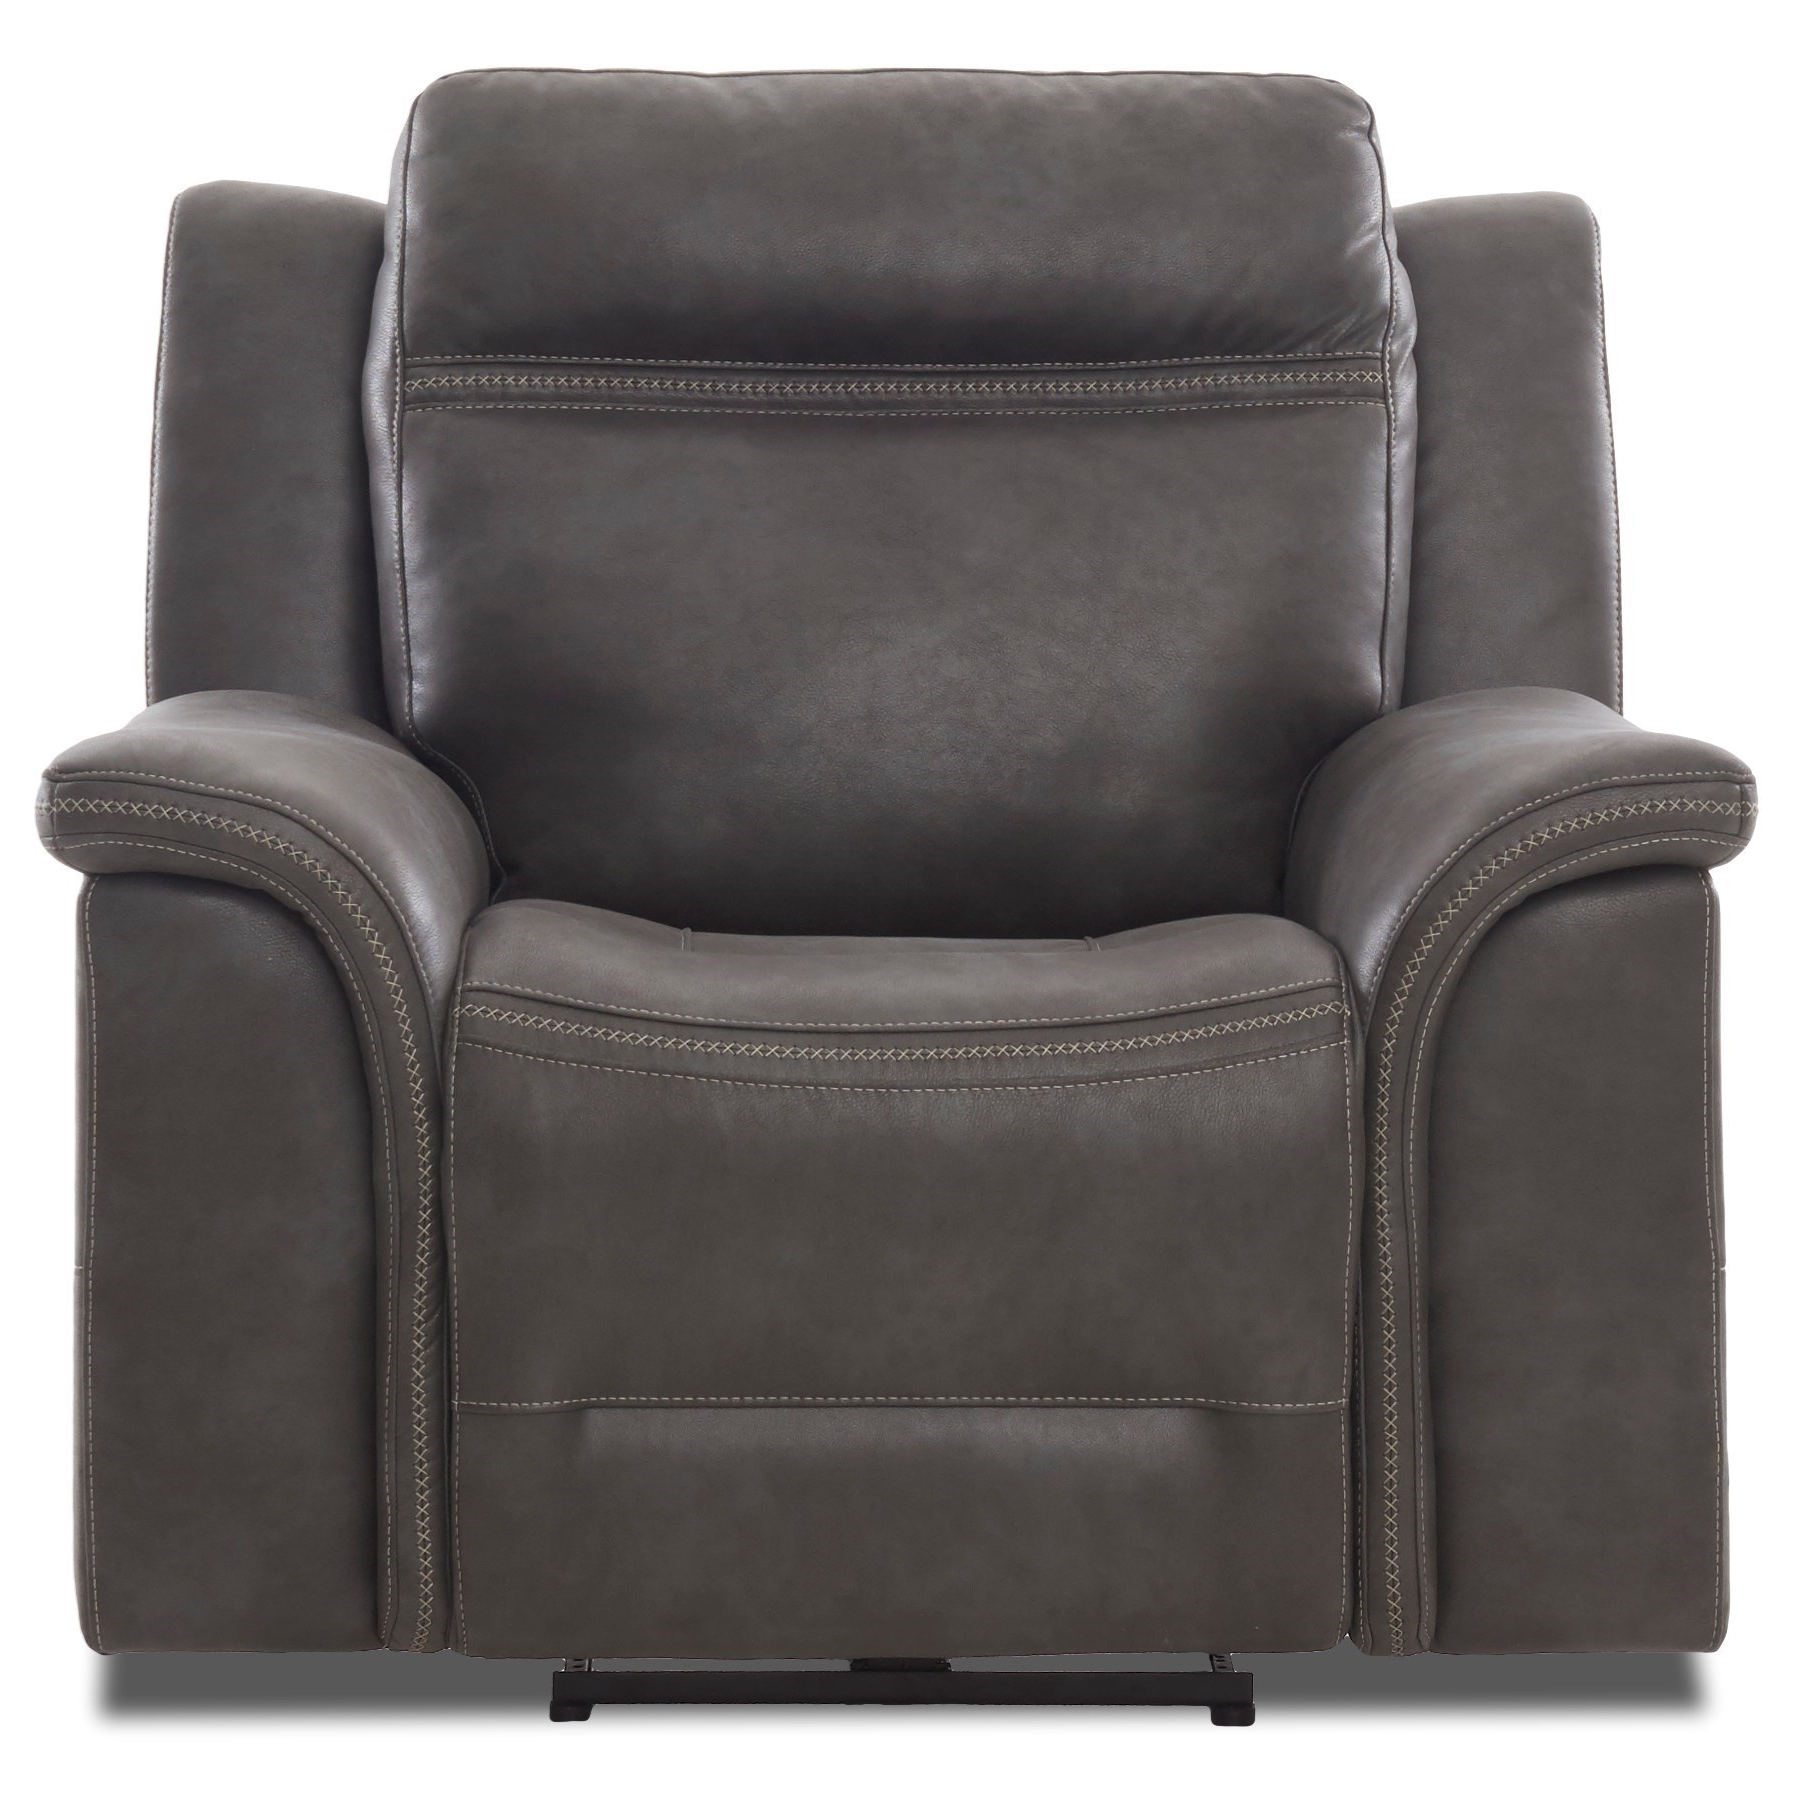 Klaussner International Huxley Huxley Pwrc Performance Intended For Widely Used Ansby Barrel Chairs (View 13 of 20)